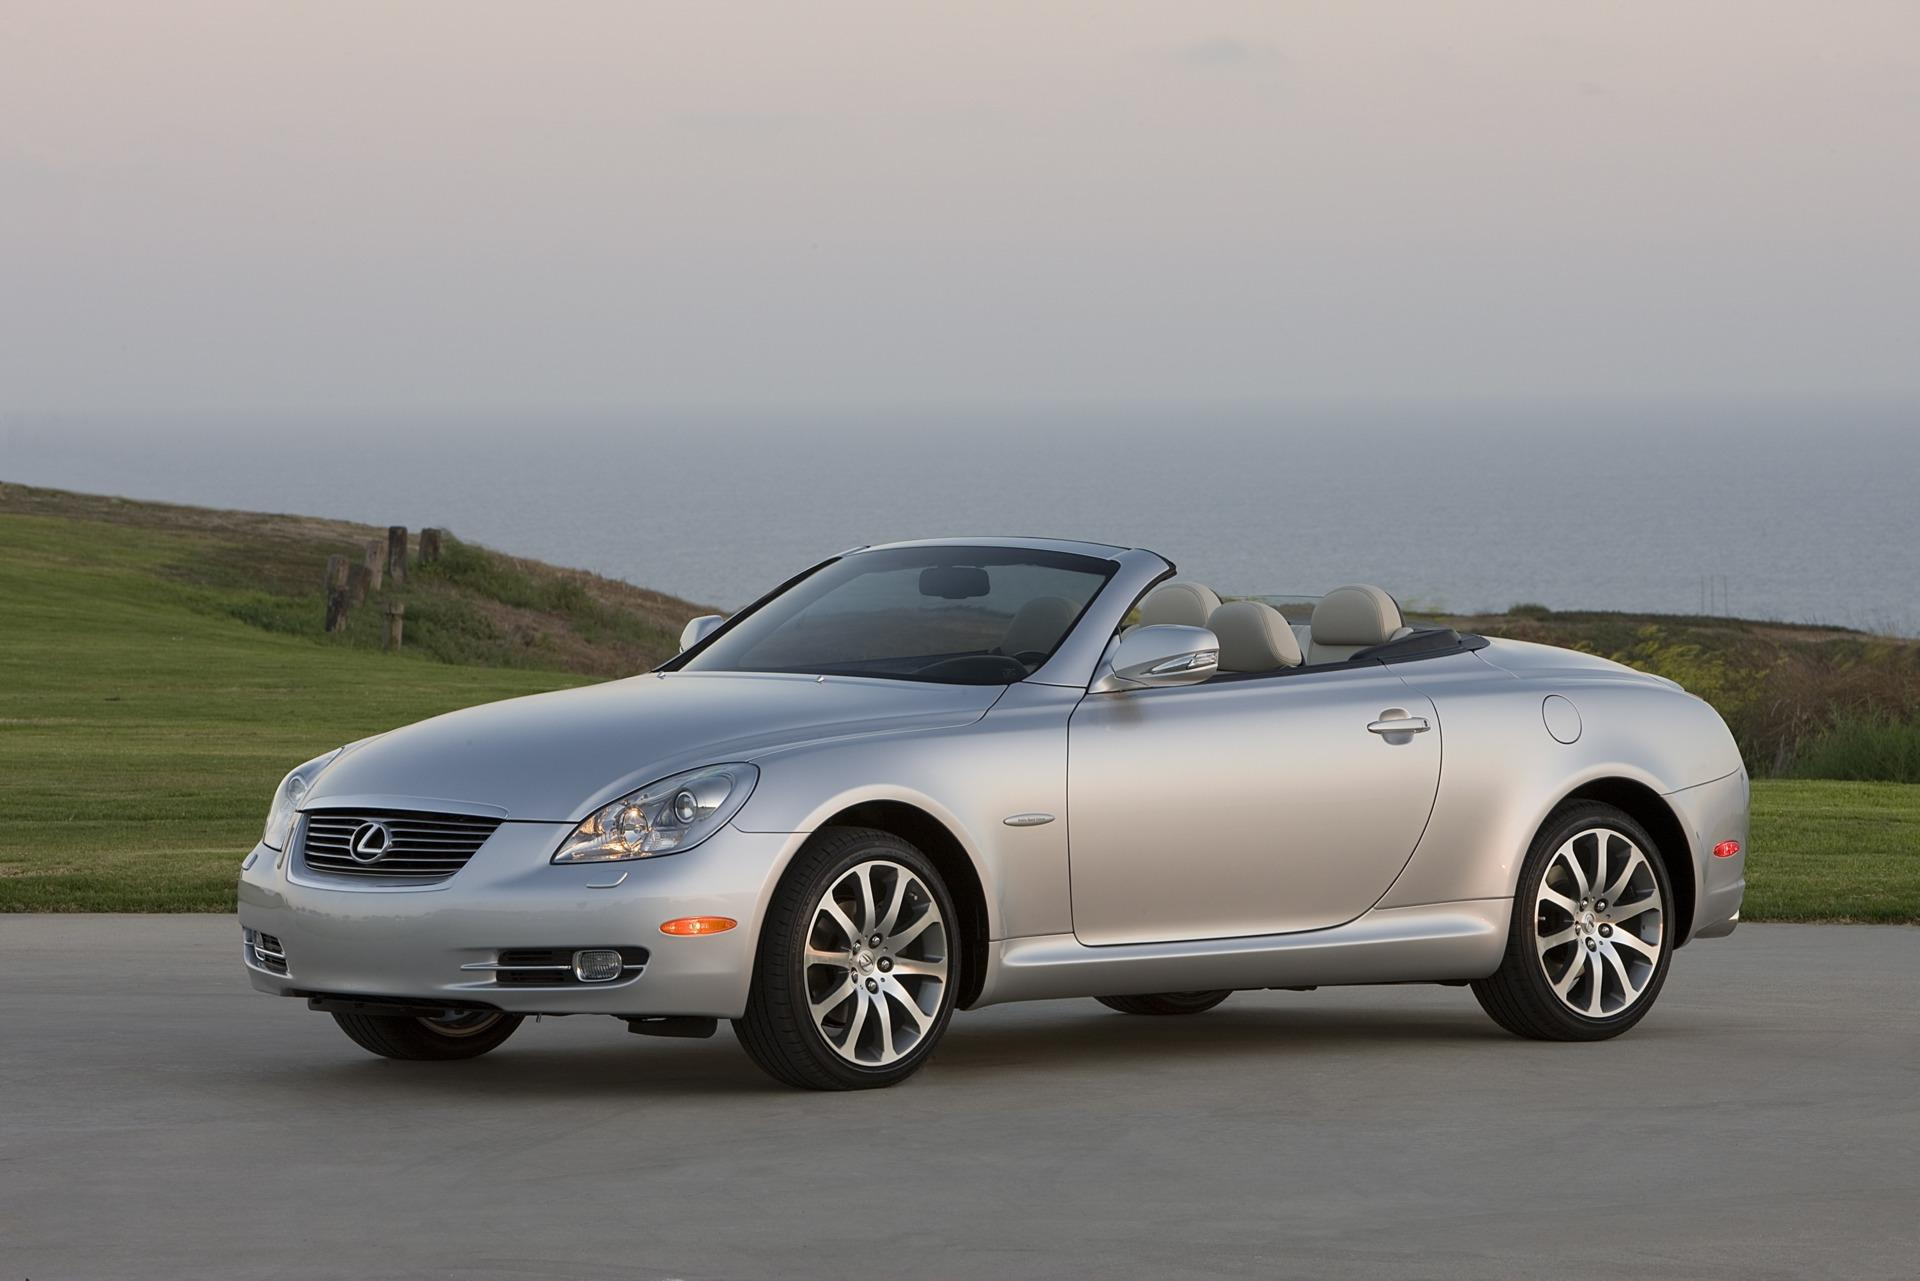 2009 lexus sc 430 pebble beach edition. Black Bedroom Furniture Sets. Home Design Ideas